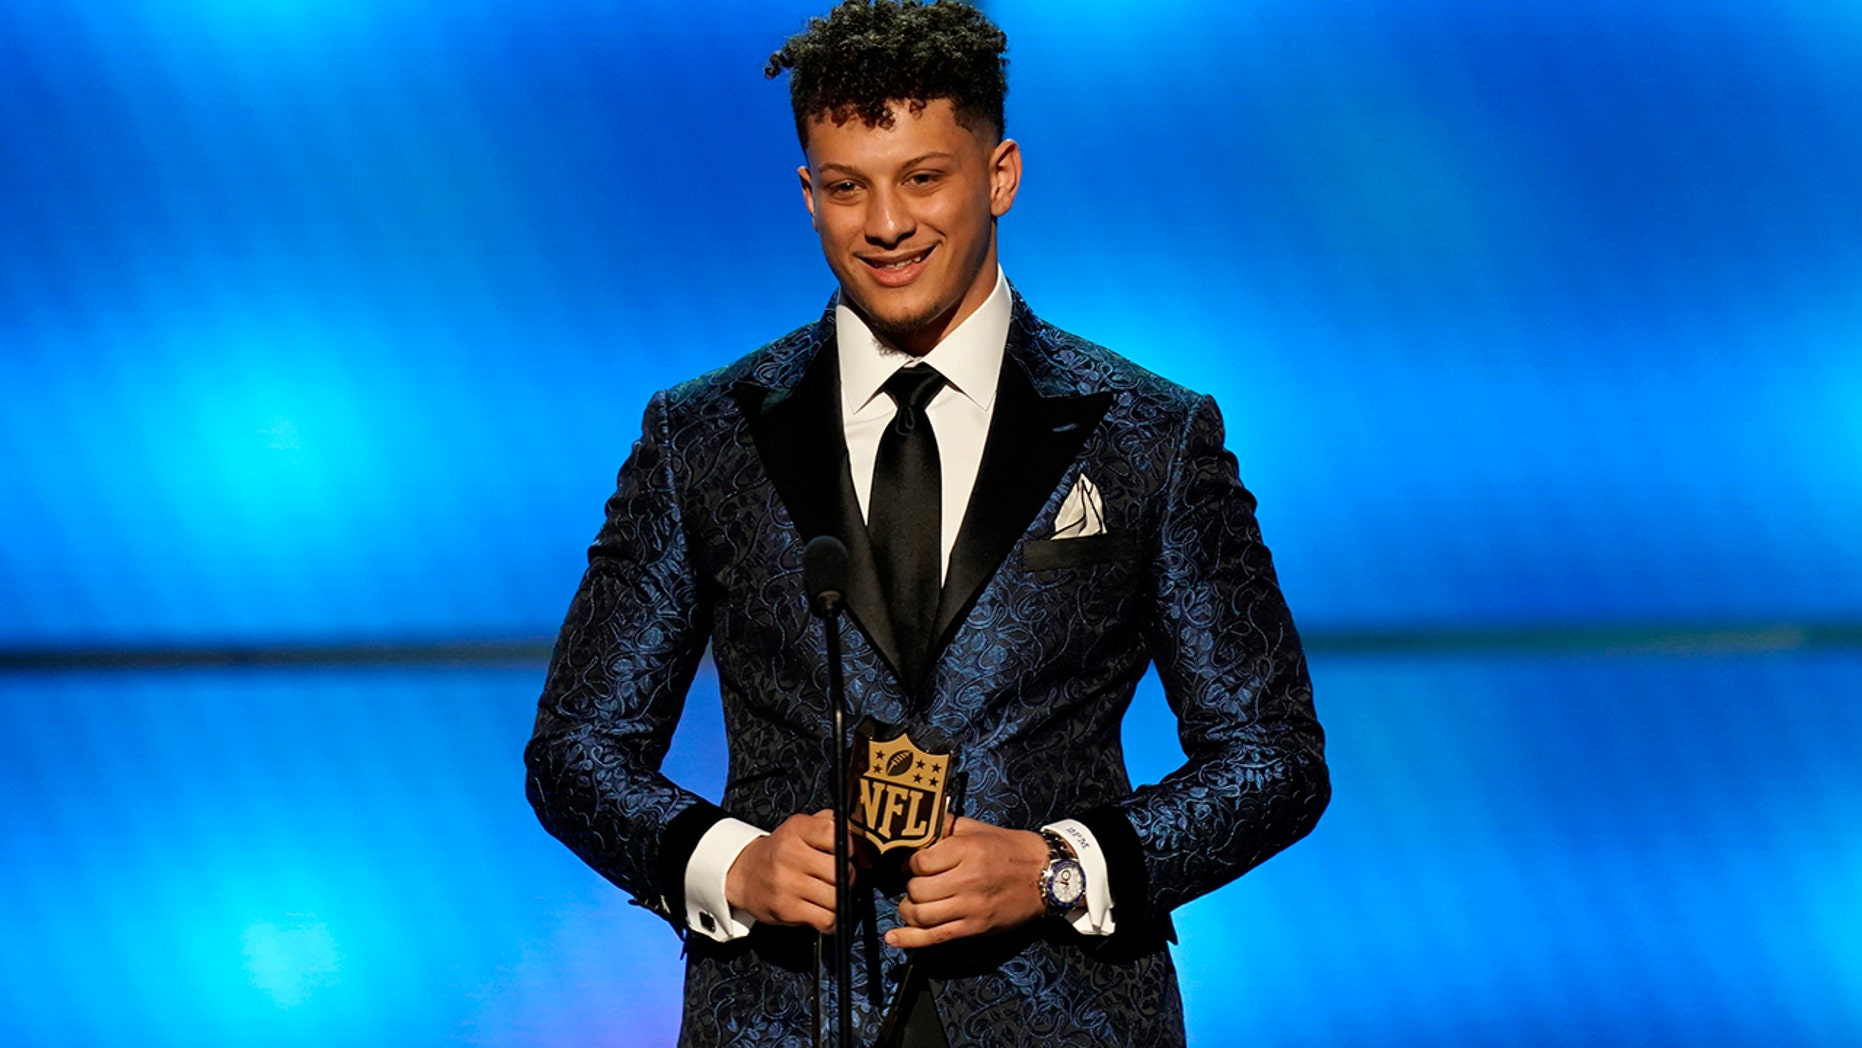 Patrick Mahomes of the Kansas City Chiefs accepts the award for AP offensive player of the year at the 8th Annual NFL Honors at The Fox Theatre on Saturday, Feb. 2, 2019, in Atlanta. (NFL/AP Images)